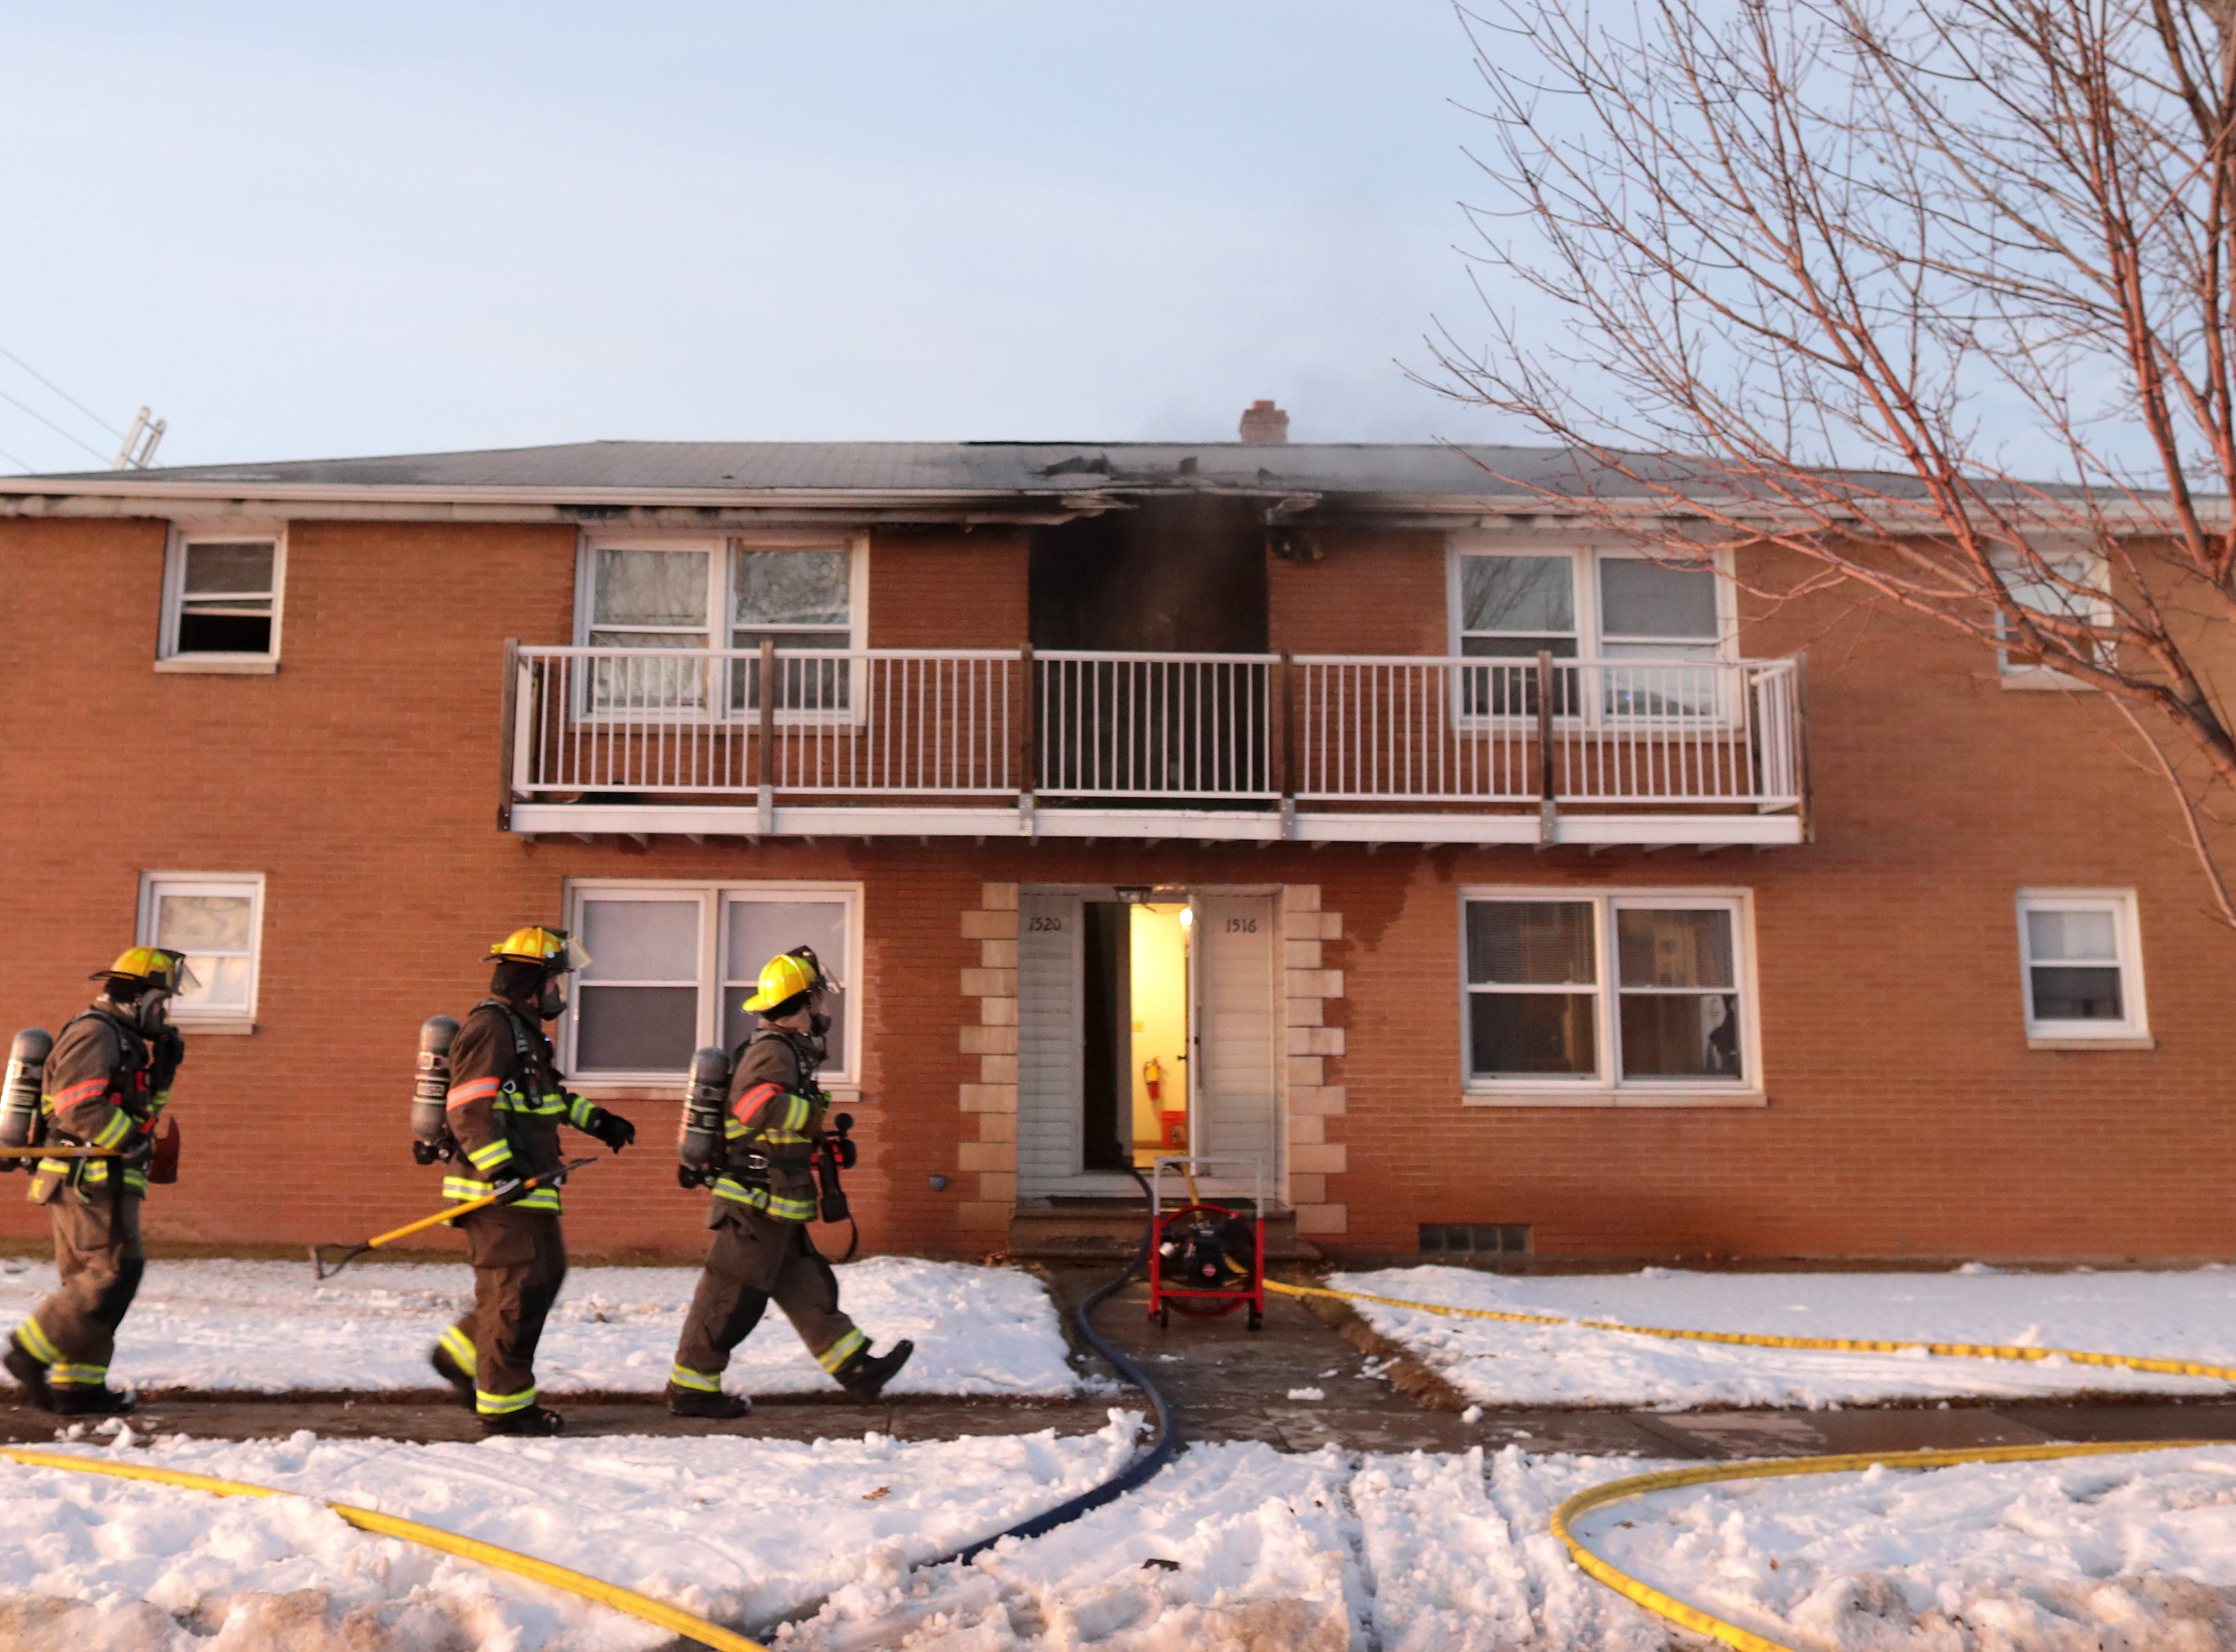 Firefighters from the Kimberly Fire Department on the scene of a second story fire in an apartment building on the1500 block of W. Fourth St. on Saturday, January 5, 2019, in Kimberly, Wis.